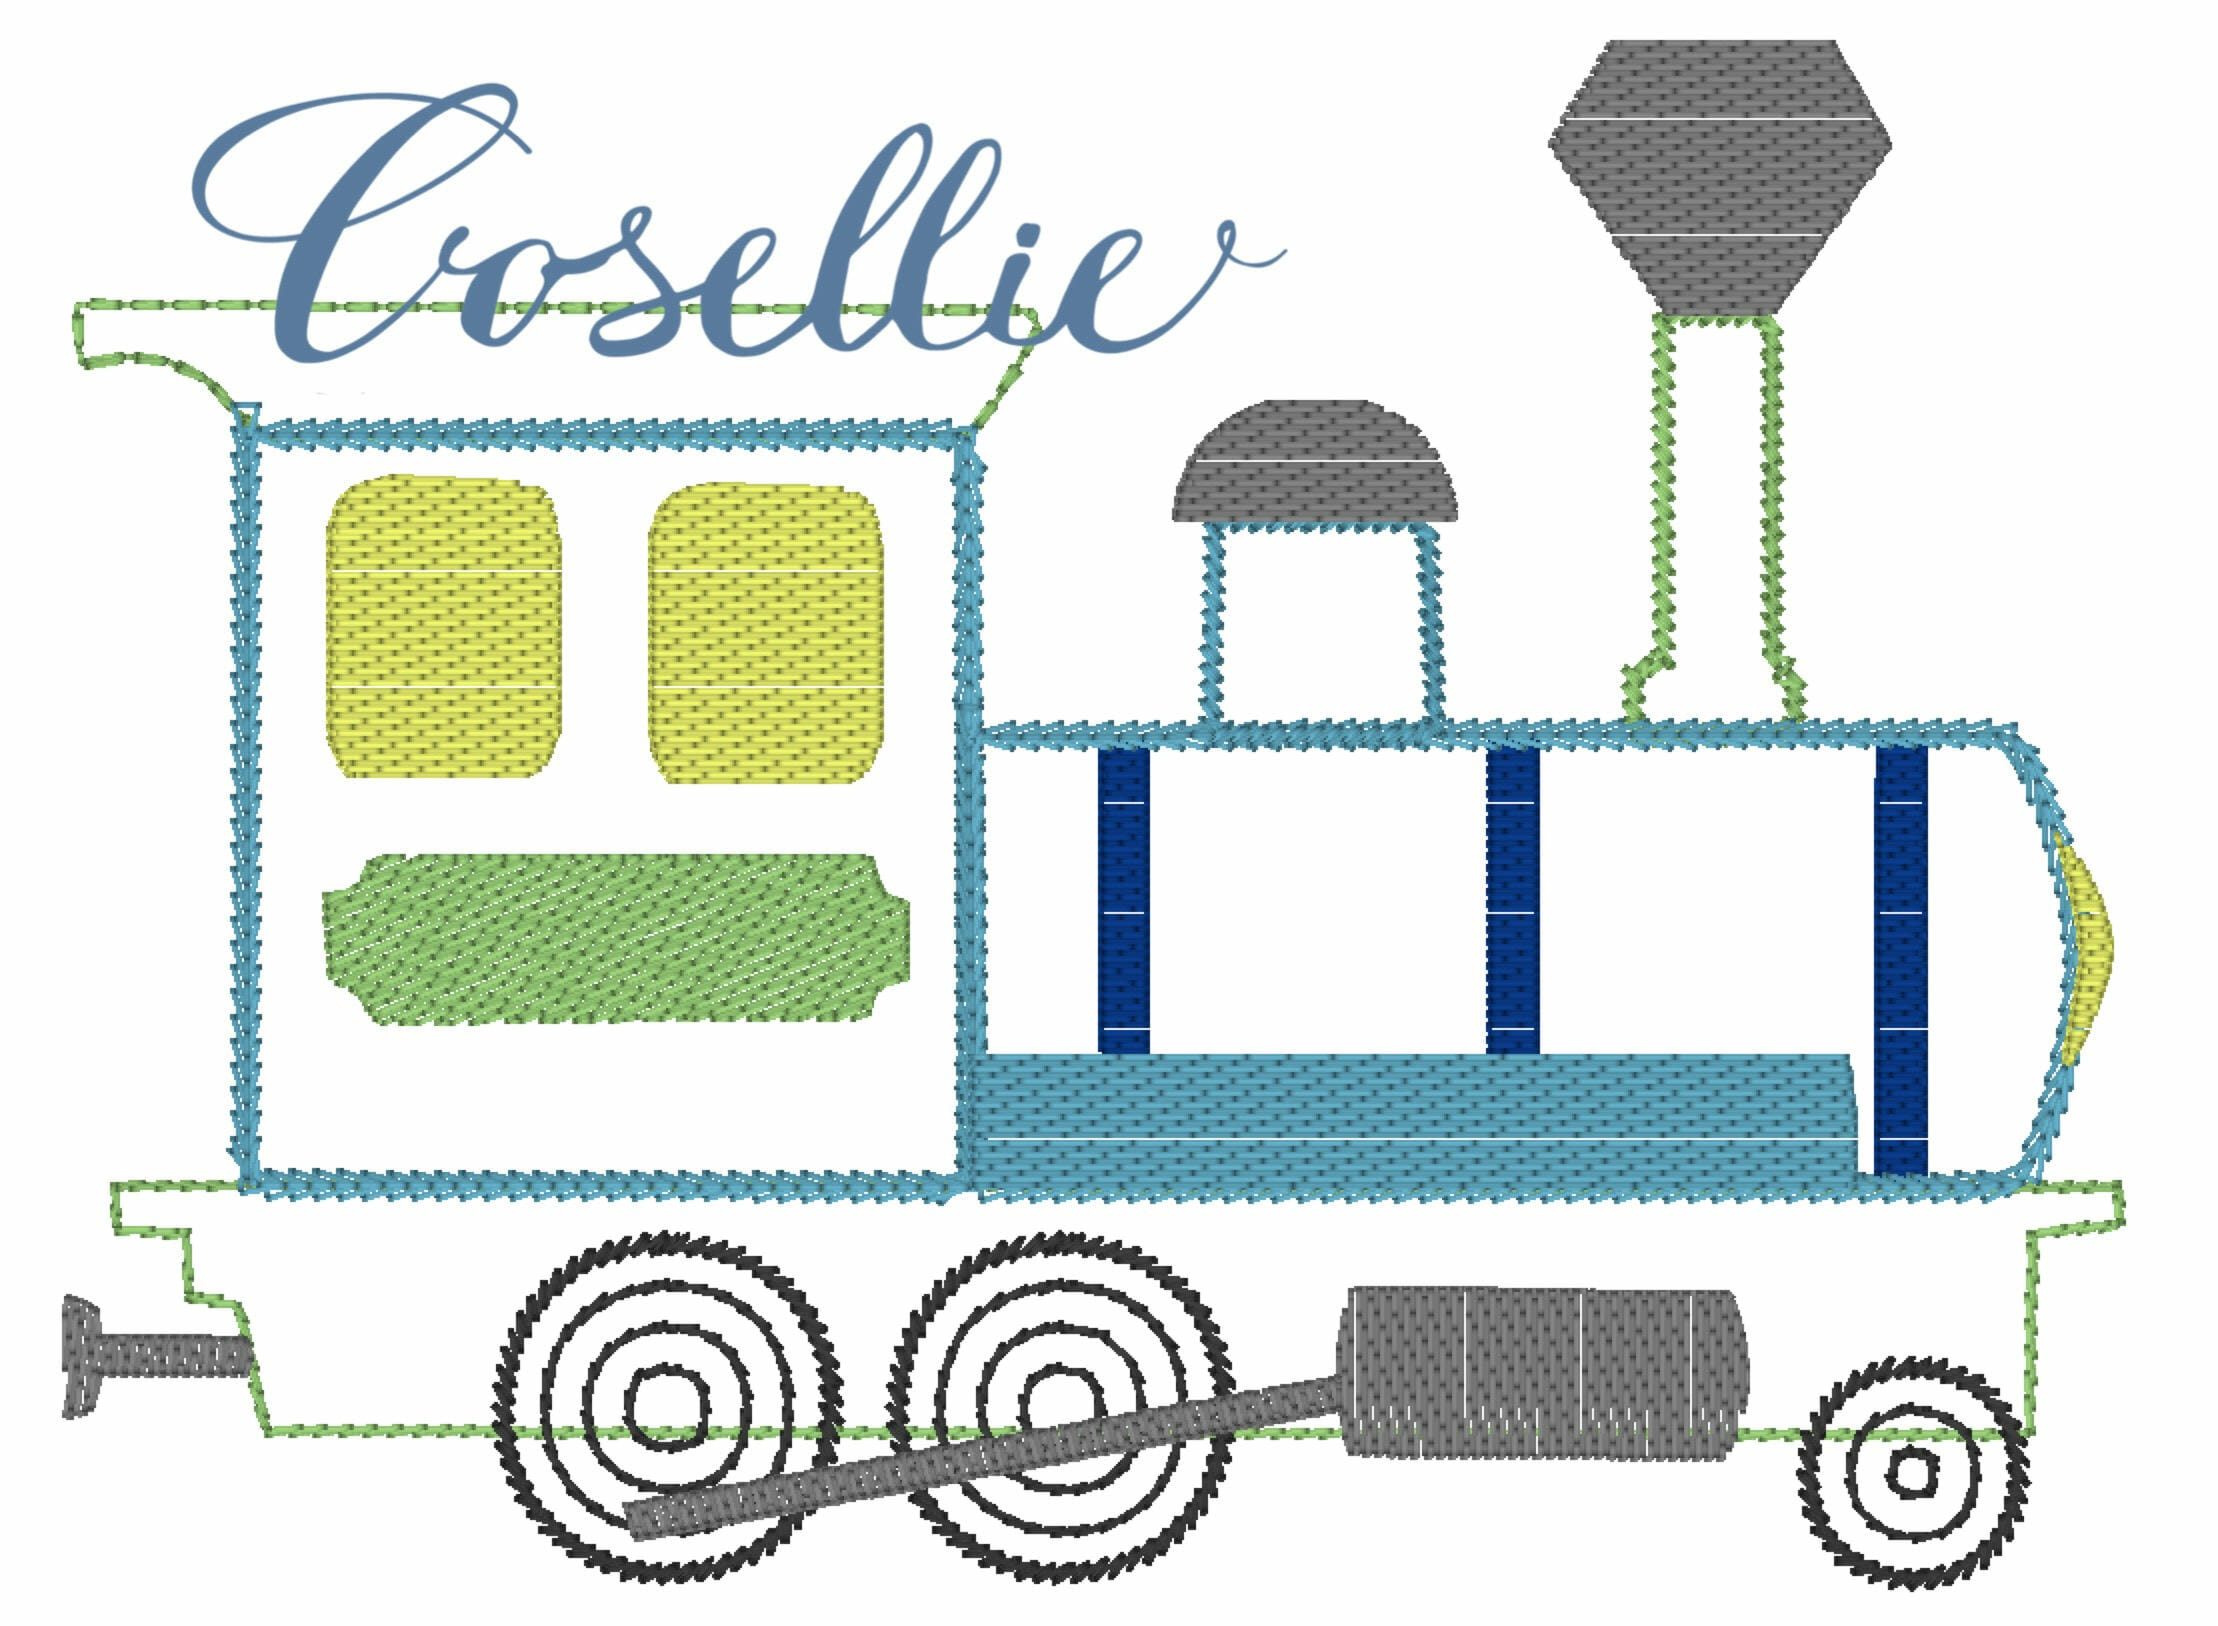 Vintage Train Embroidery Design Embroidery Design Cosellie